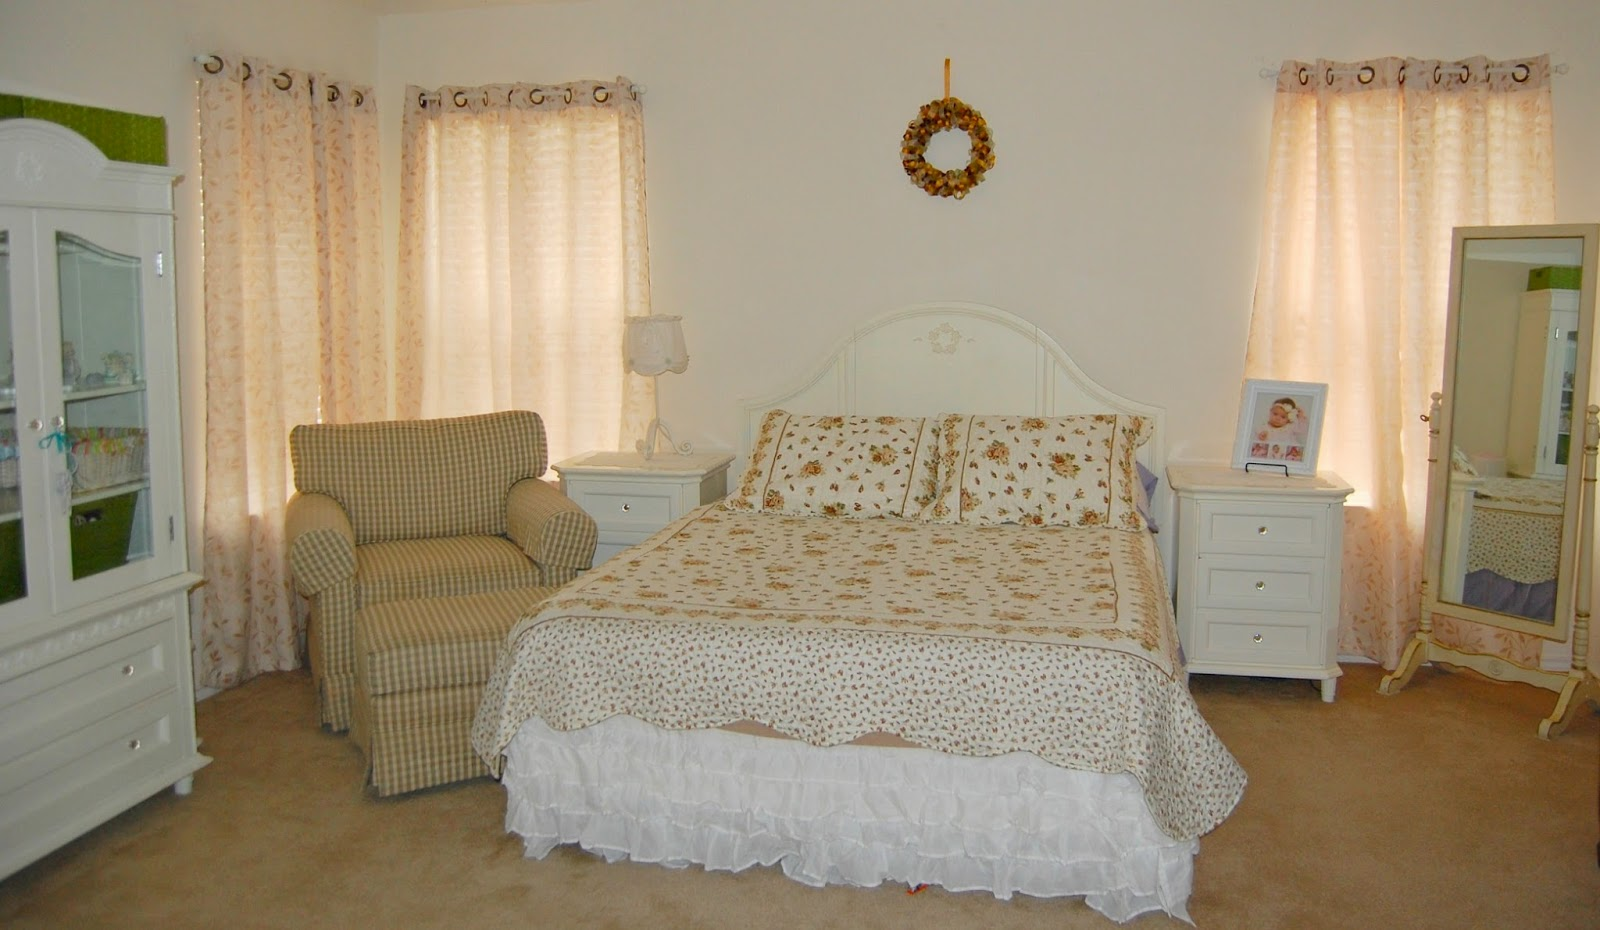 Low on drama frugal mama target 39 s discontinued simply - Simply shabby chic bedroom furniture ...